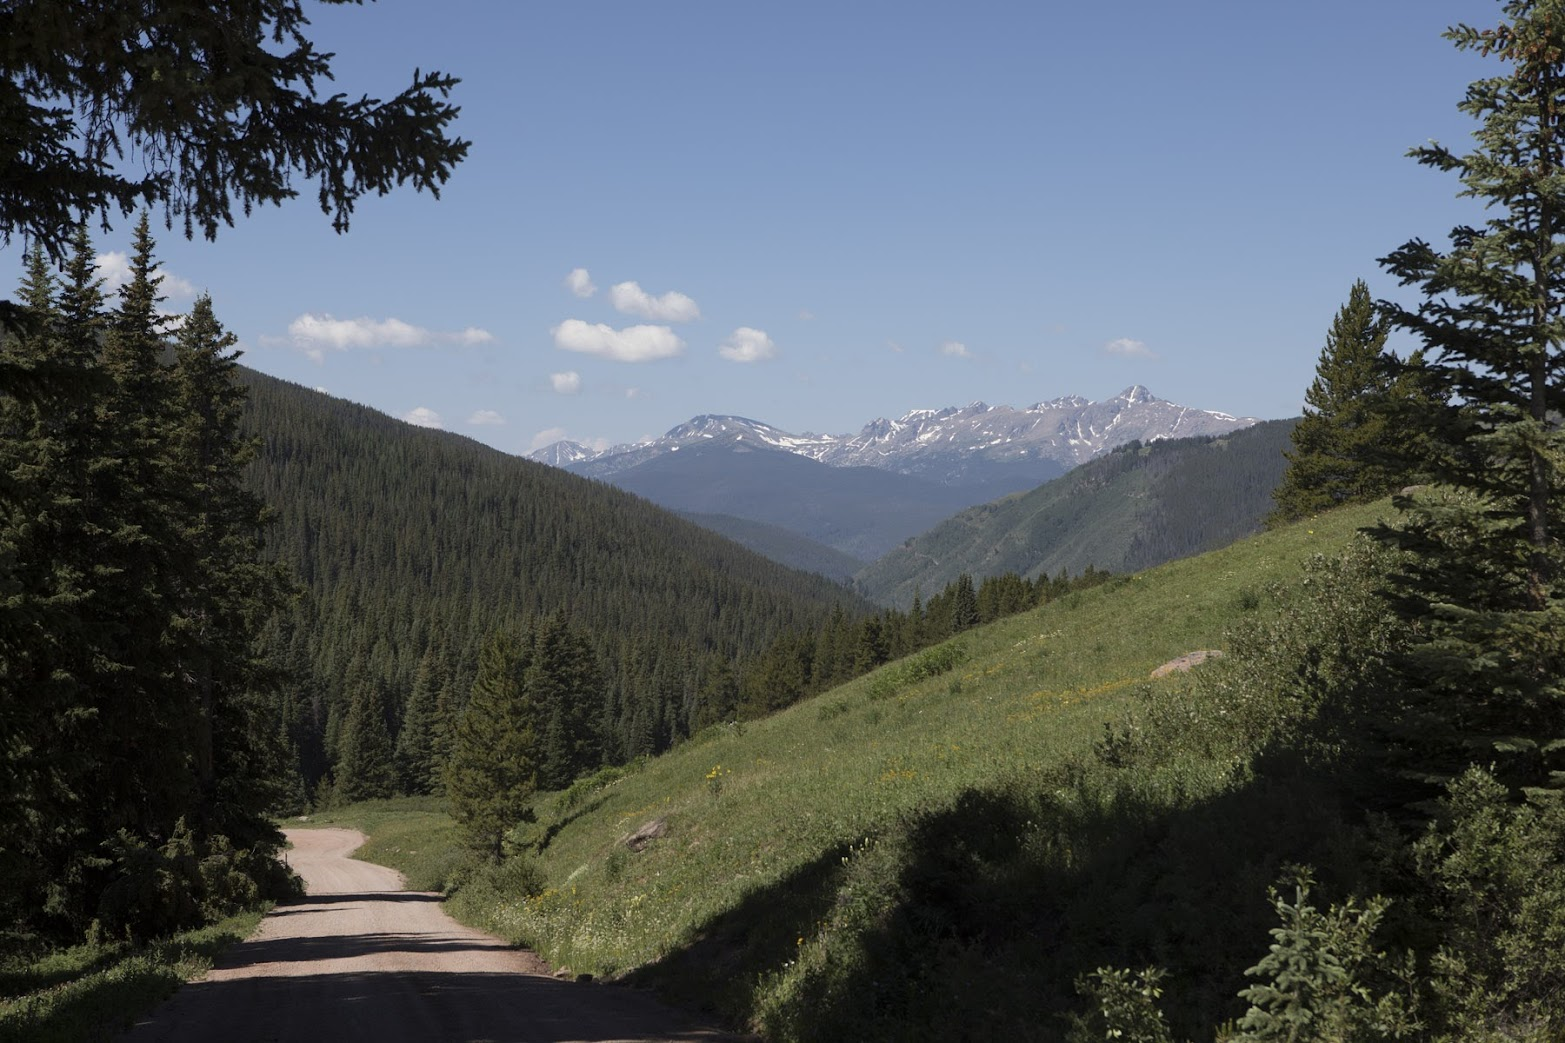 Mt of the Holy Cross (tallest peak at right) from Shrine Pass